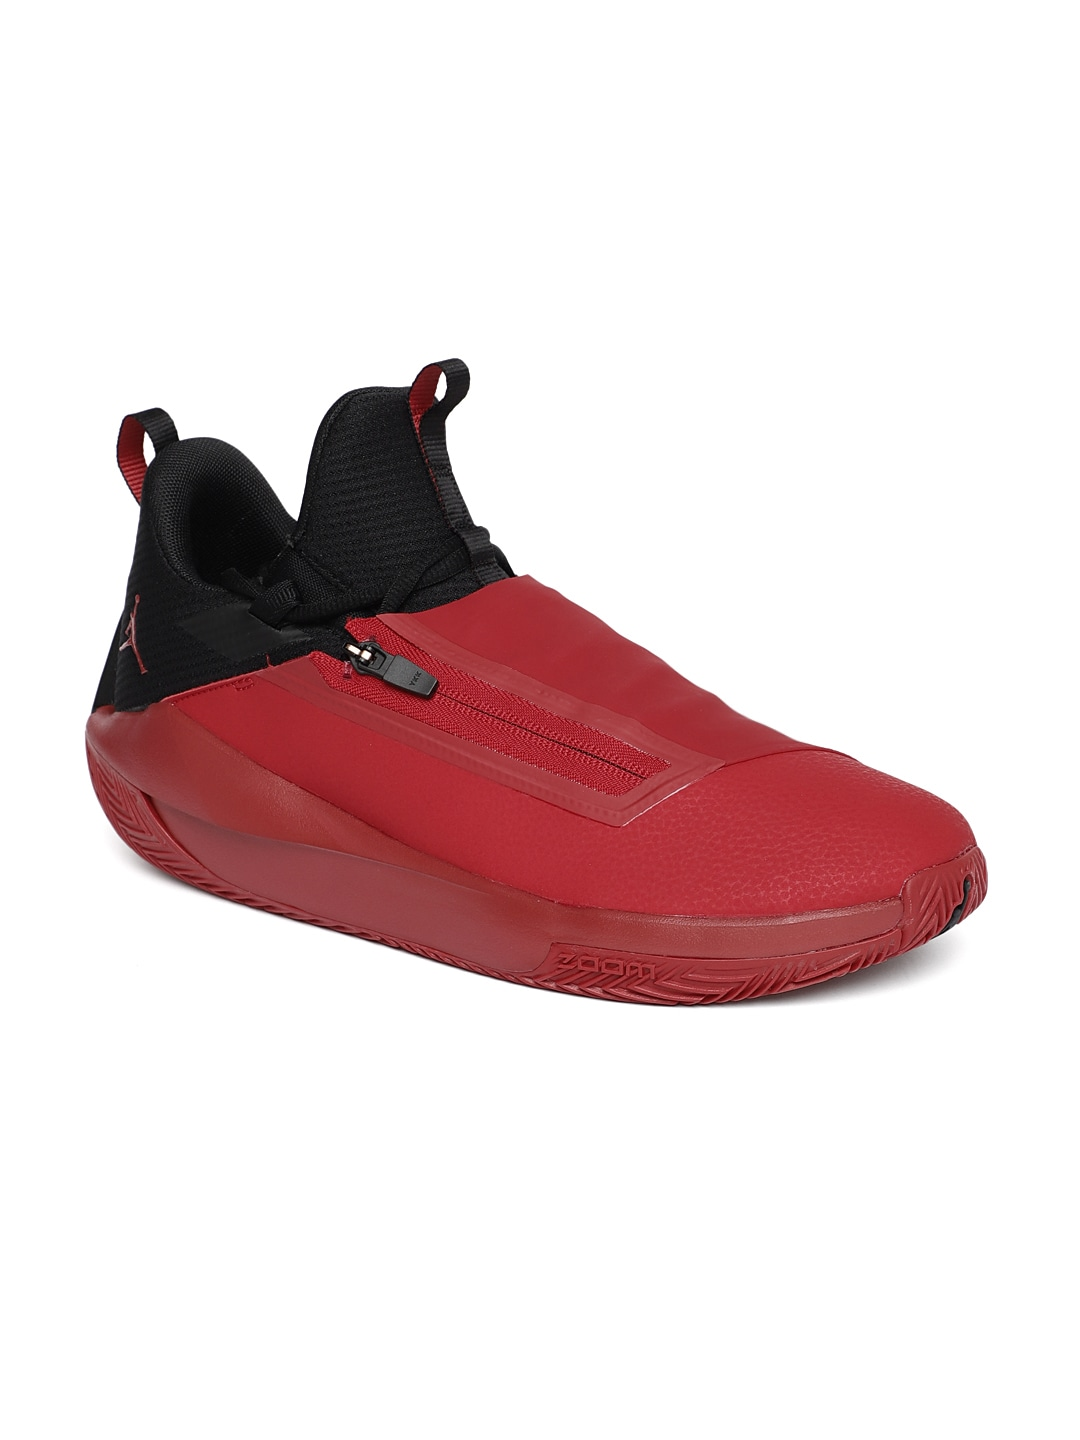 the latest 4acdf 89f95 Nike Jordan - Buy Original Nike Jordan Products Online   Myntra